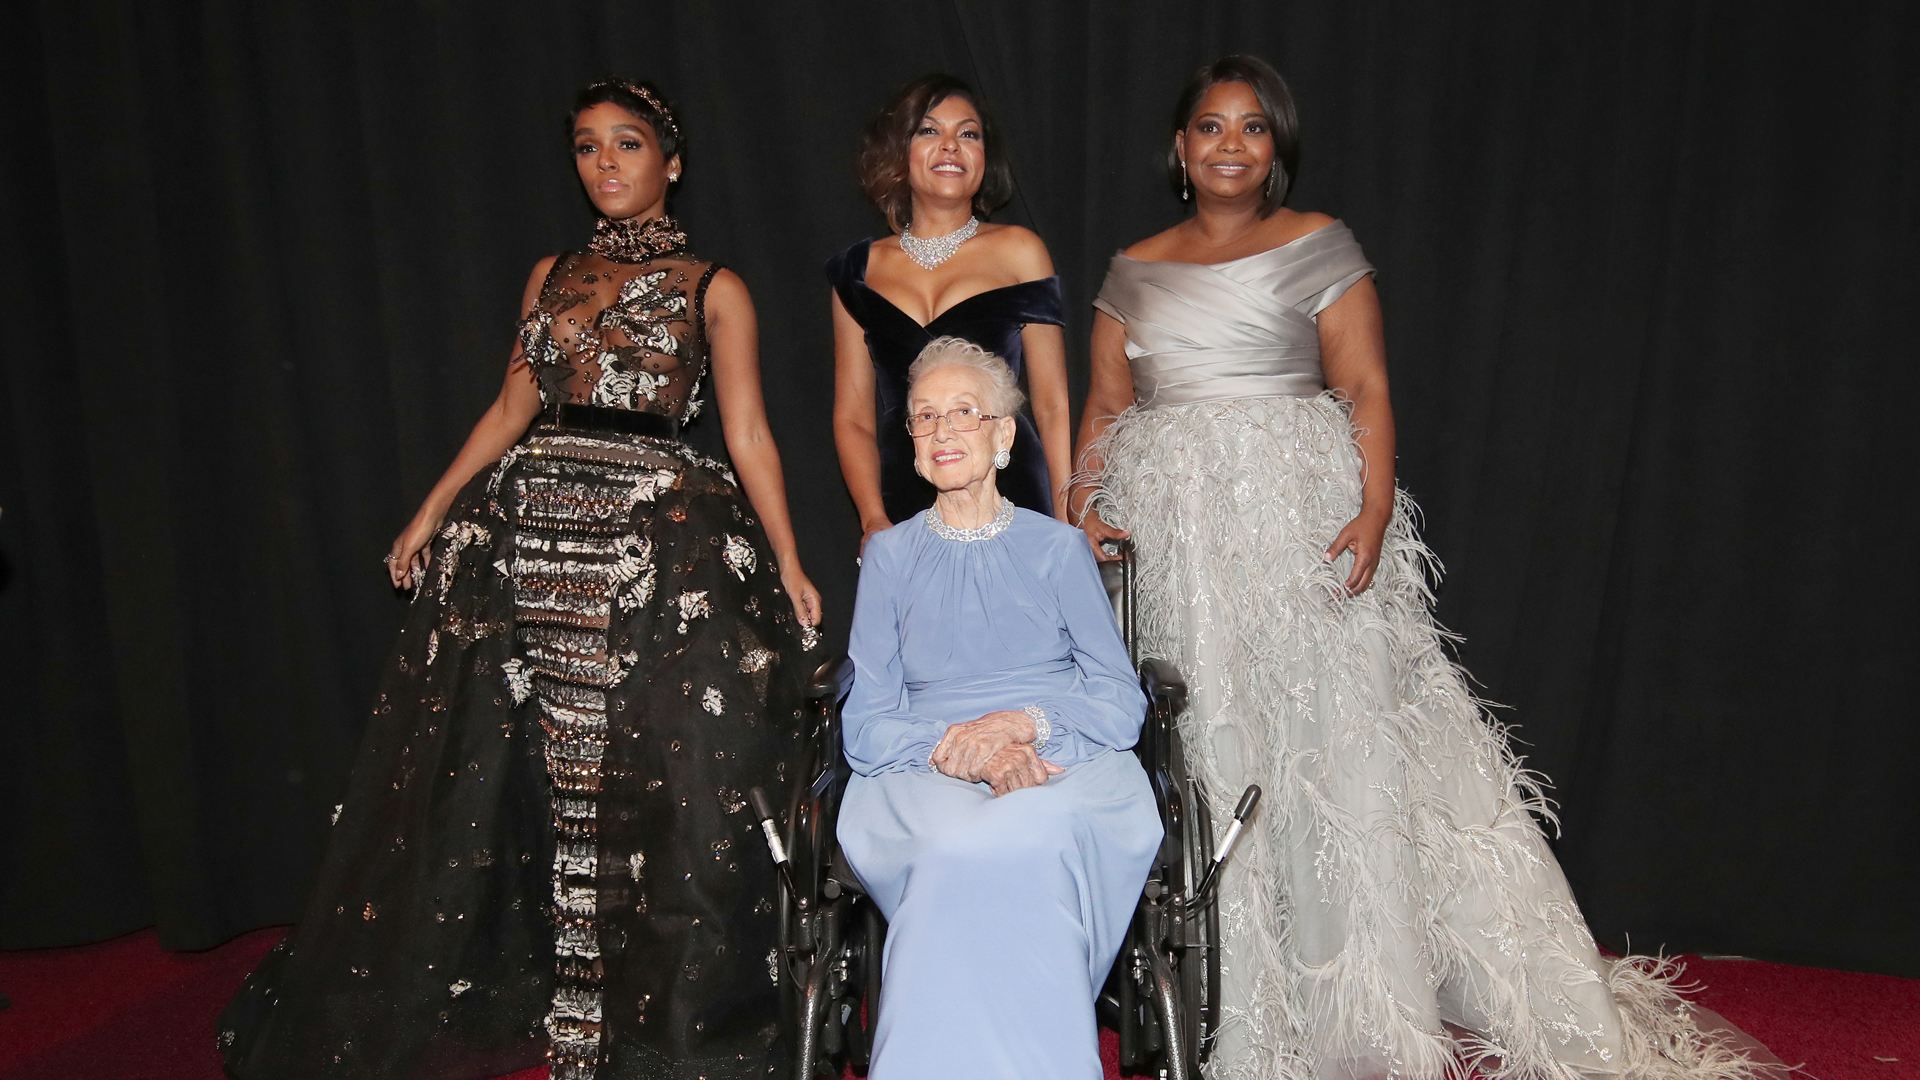 NASA mathematician Katherine Johnson and actors Janelle Monae, Taraji P. Henson and Octavia Spencer pose backstage during the 89th Annual Academy Awards at Hollywood & Highland Center on February 26, 2017 in Hollywood. (Photo by Christopher Polk/Getty Images)